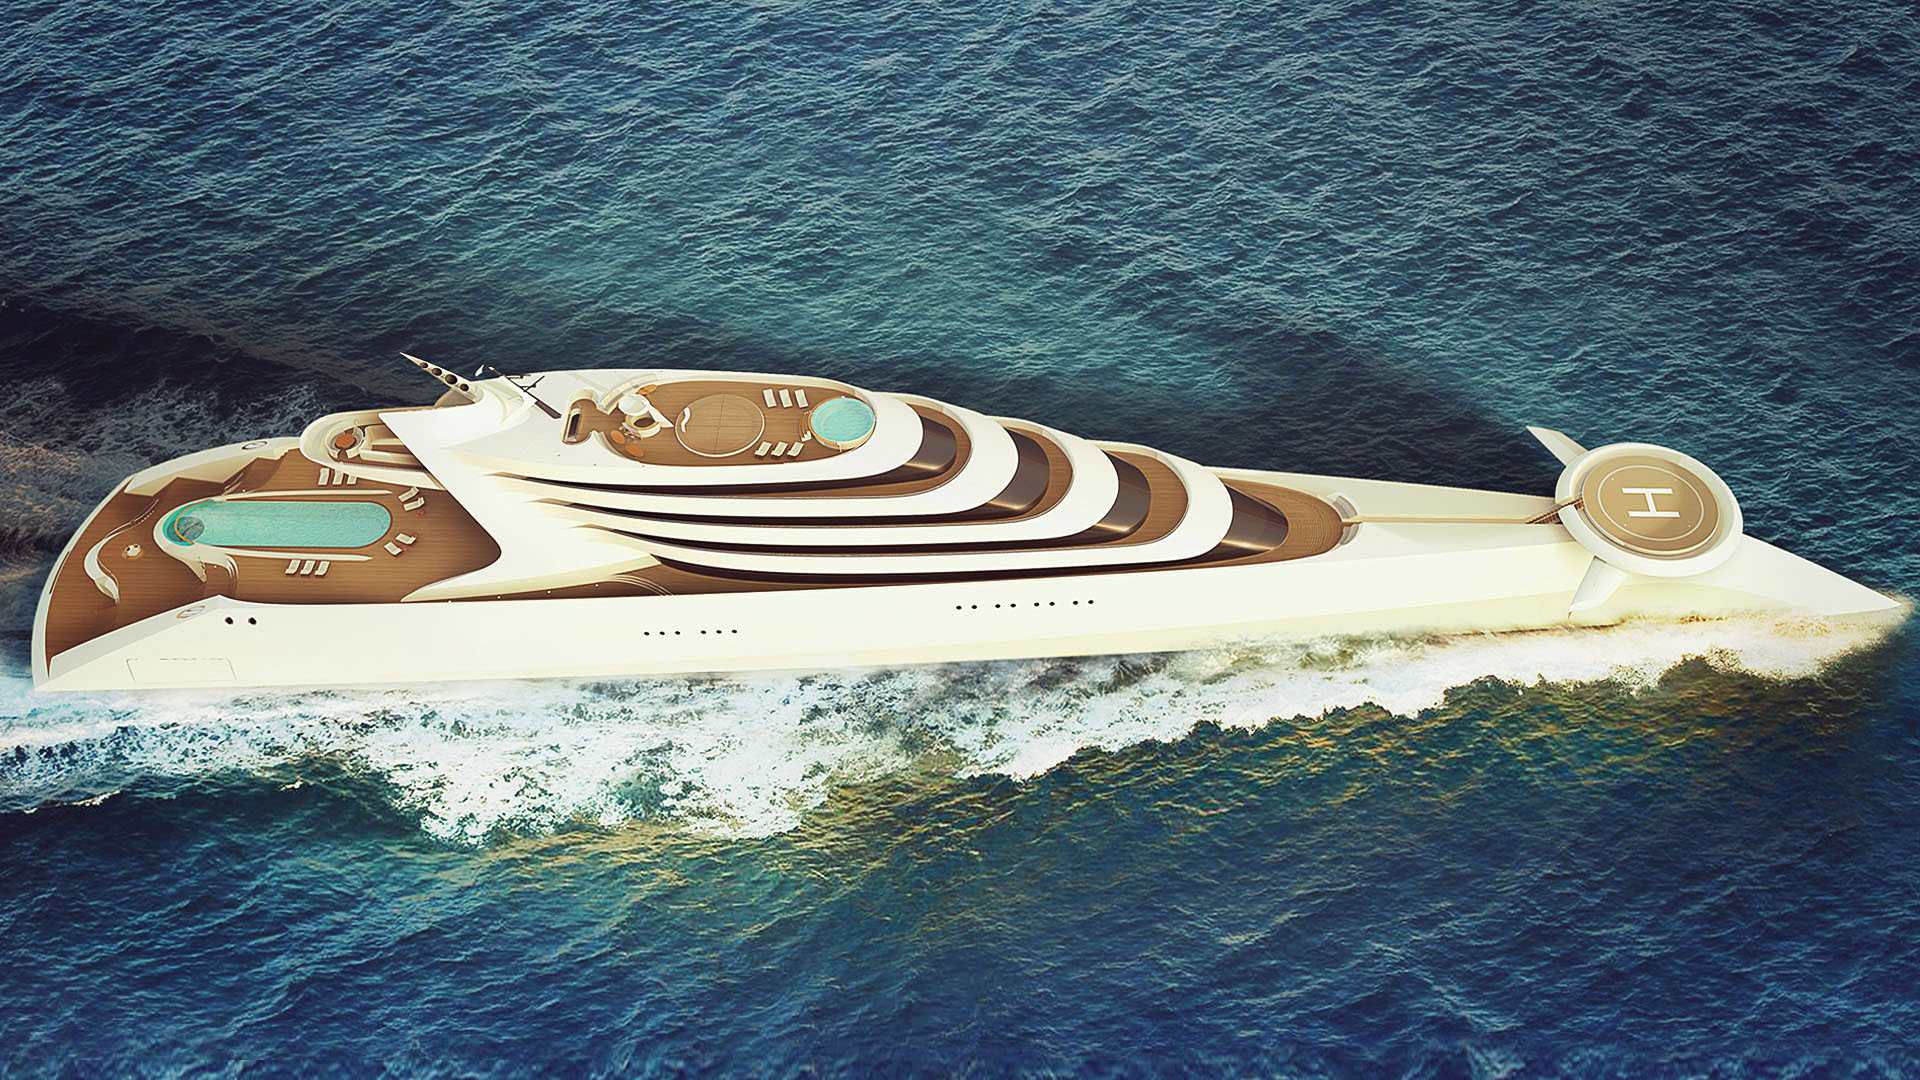 Tropical Island Yacht Top Superyacht Stories Of 2016 Everyone Should Read Luxury Yacht